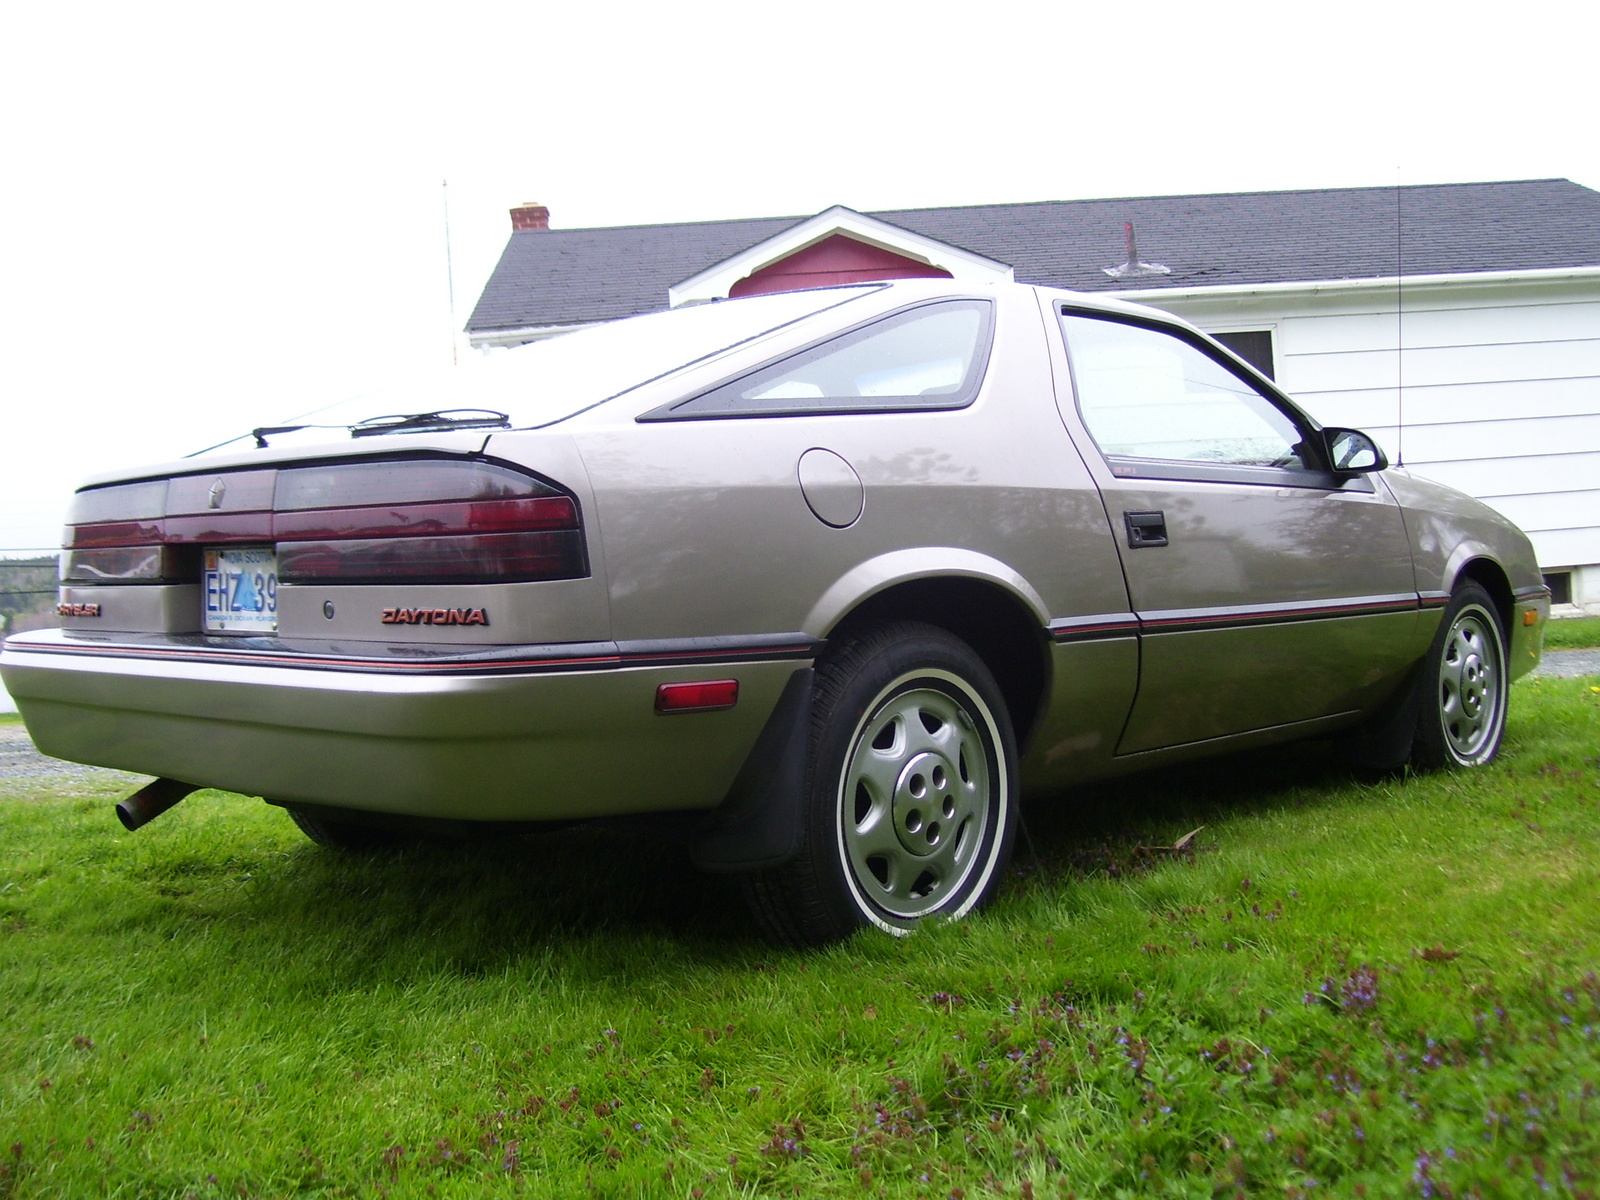 1988 Chrysler Daytona picture